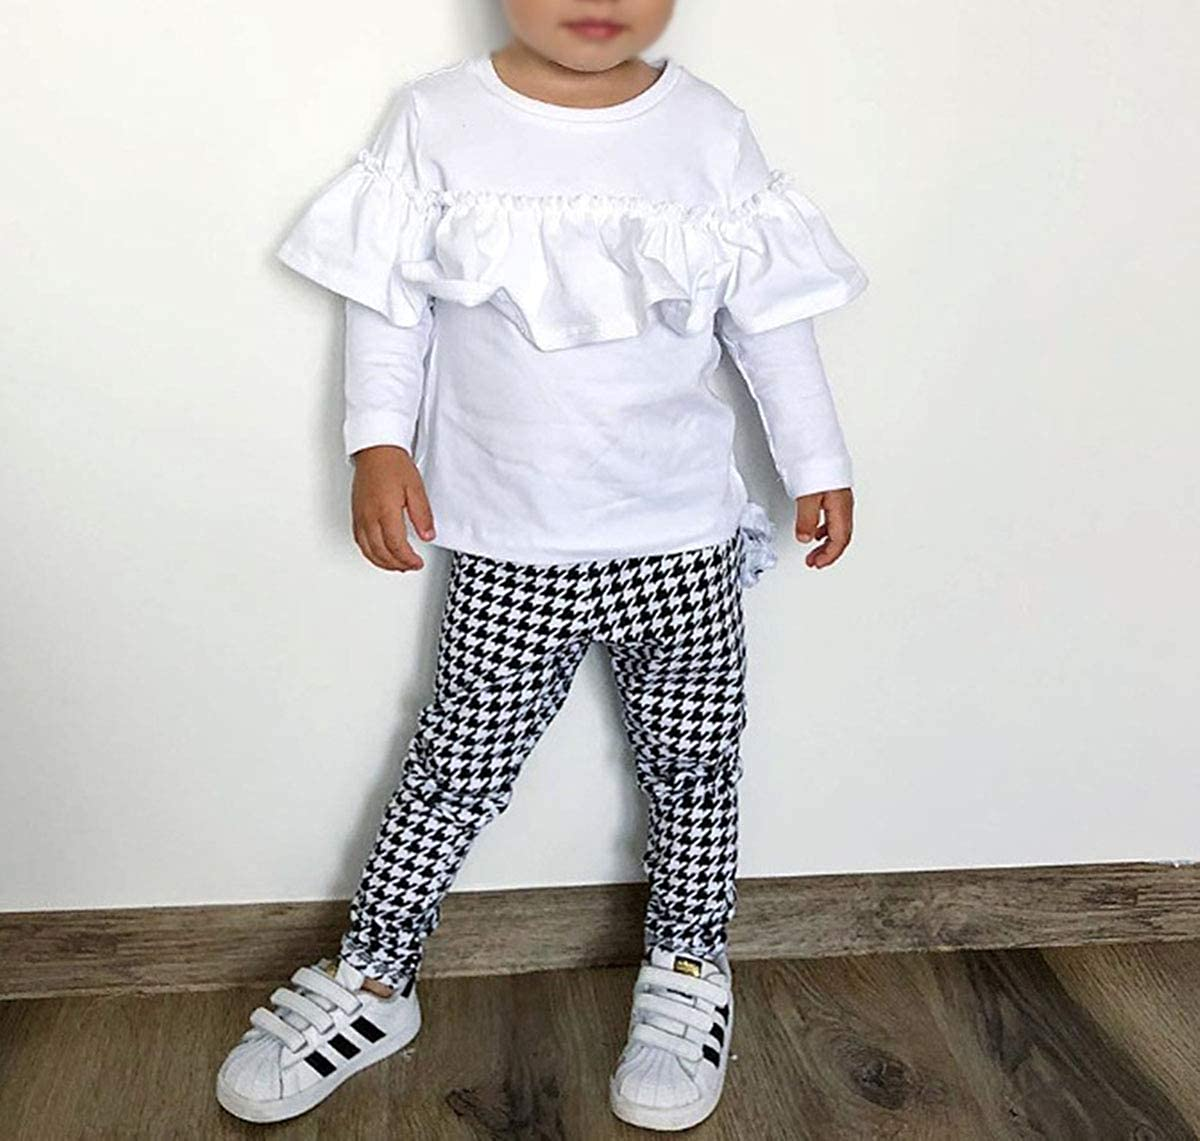 Toddler Baby Girls Ruffle Long Sleeve Tops Shirt Plaid Houndstooth Pants Outfit Set